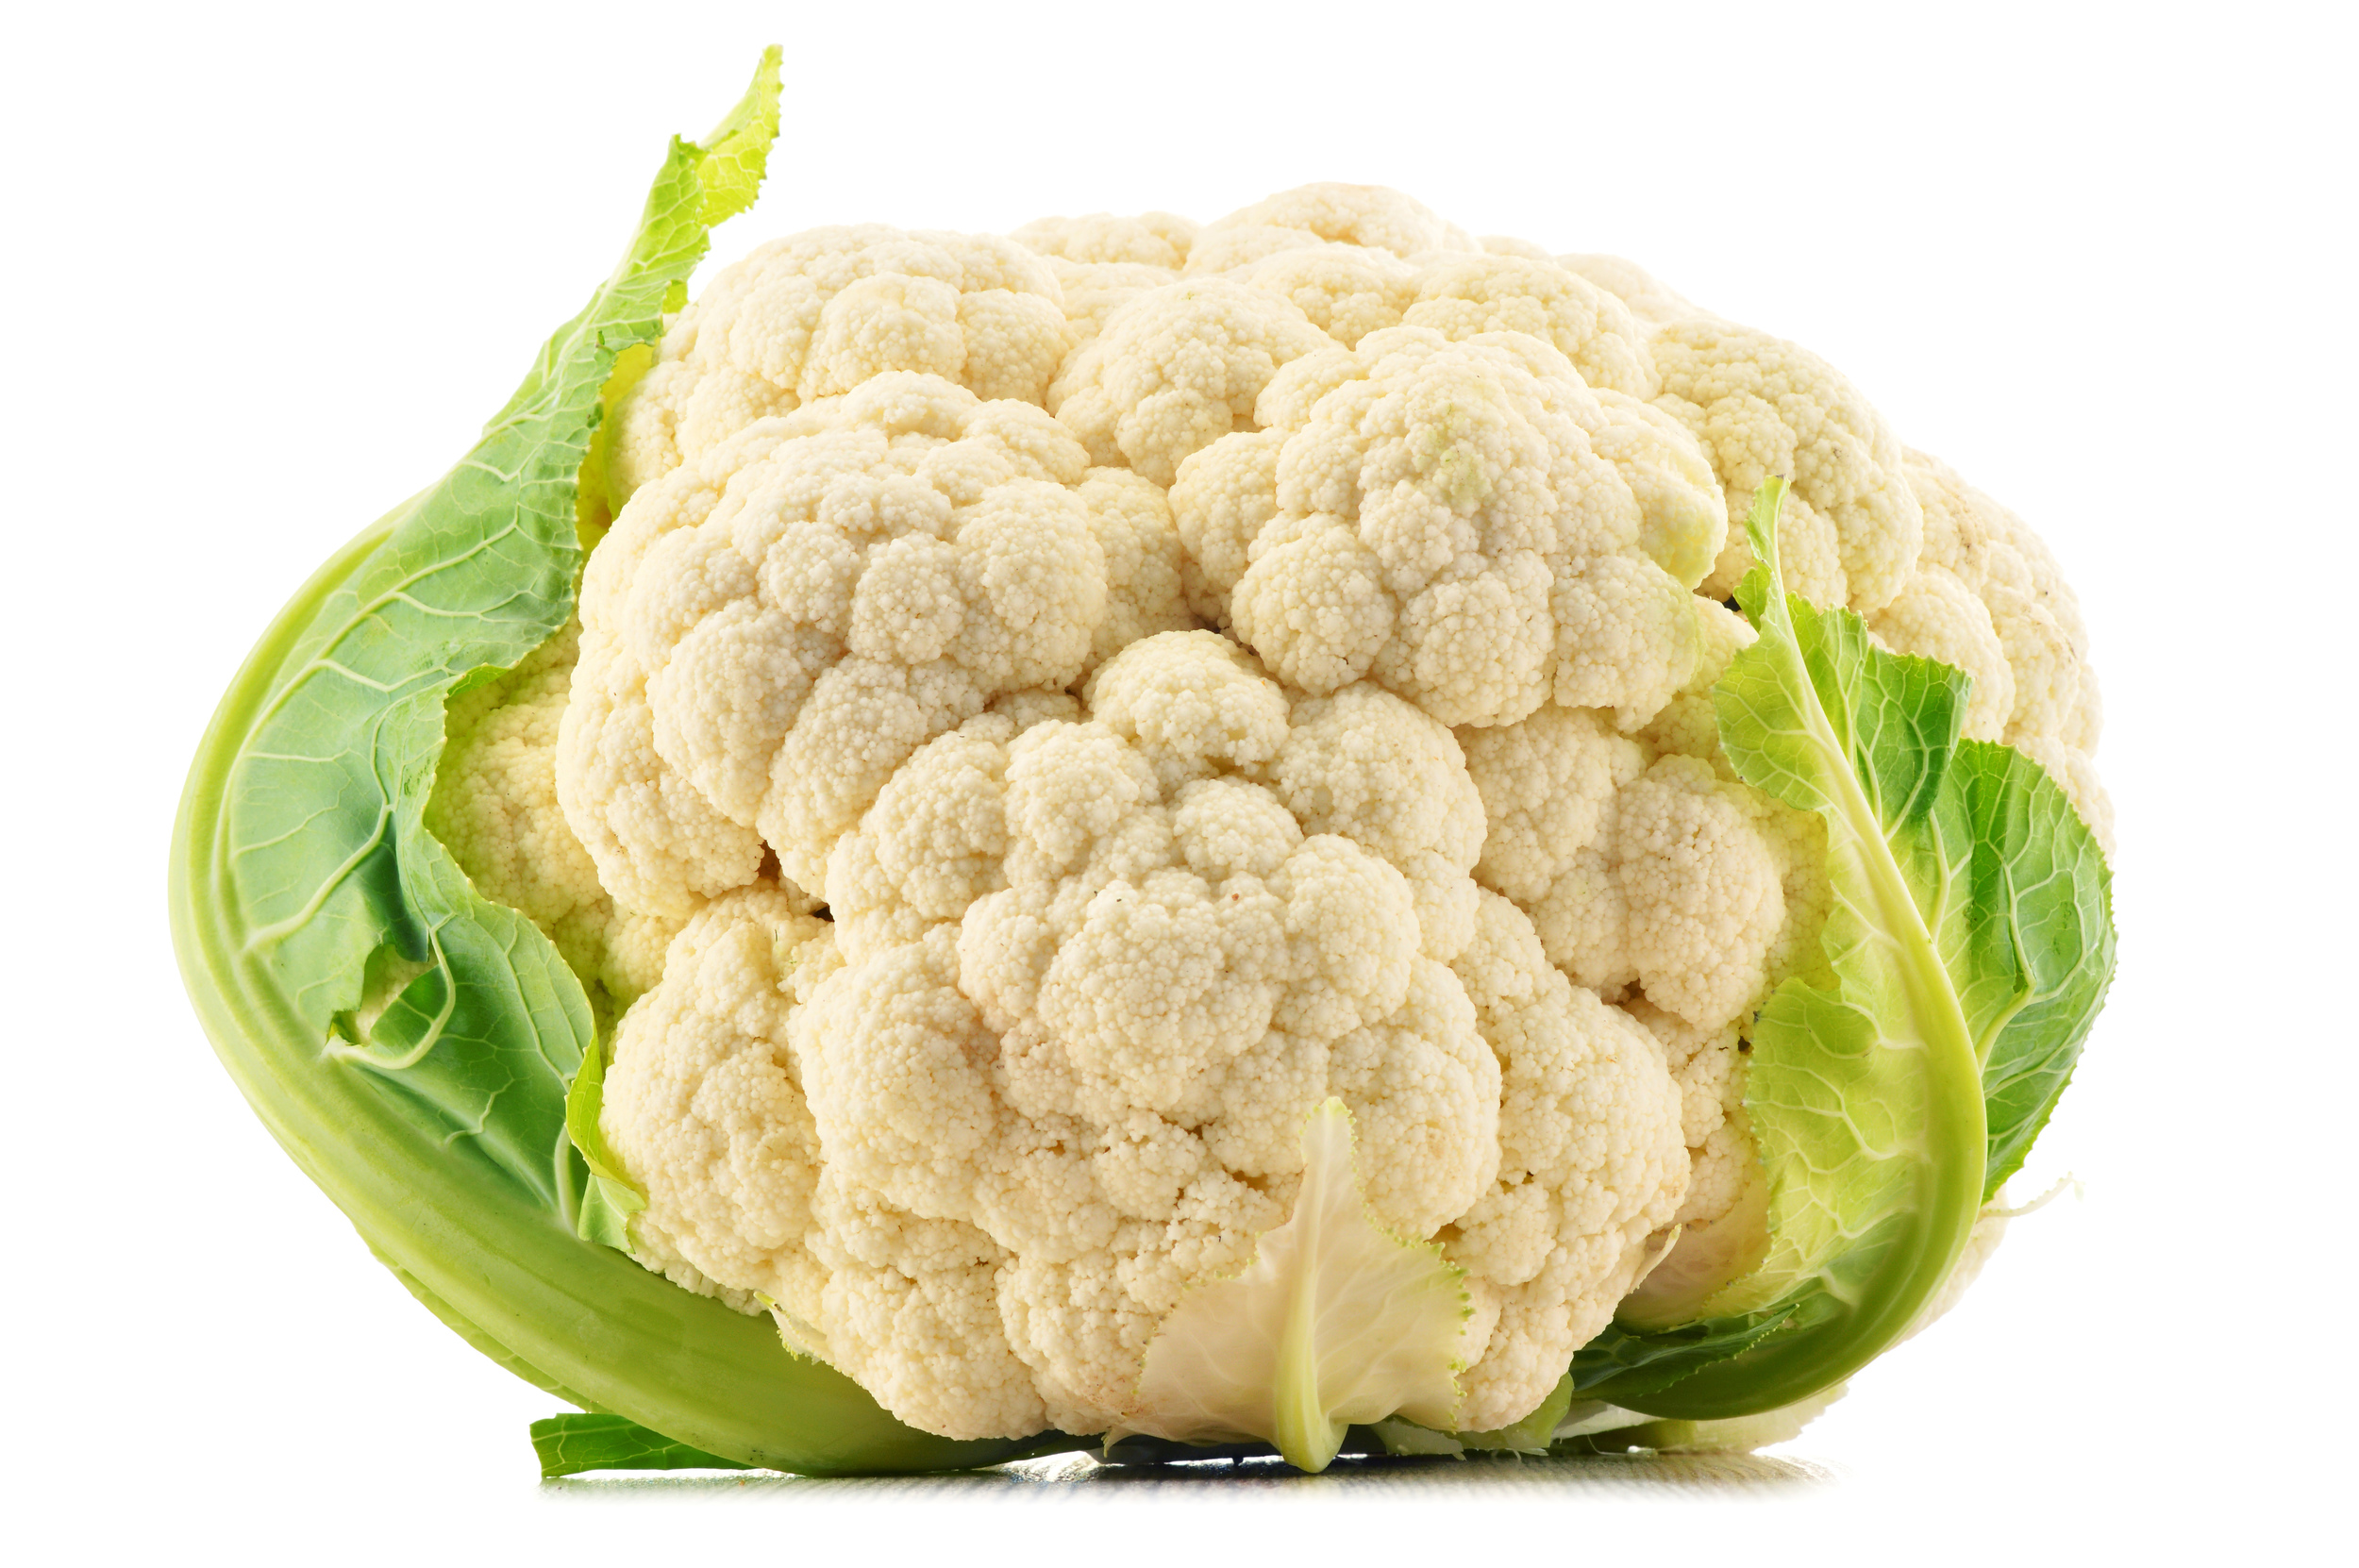 Cauliflower -